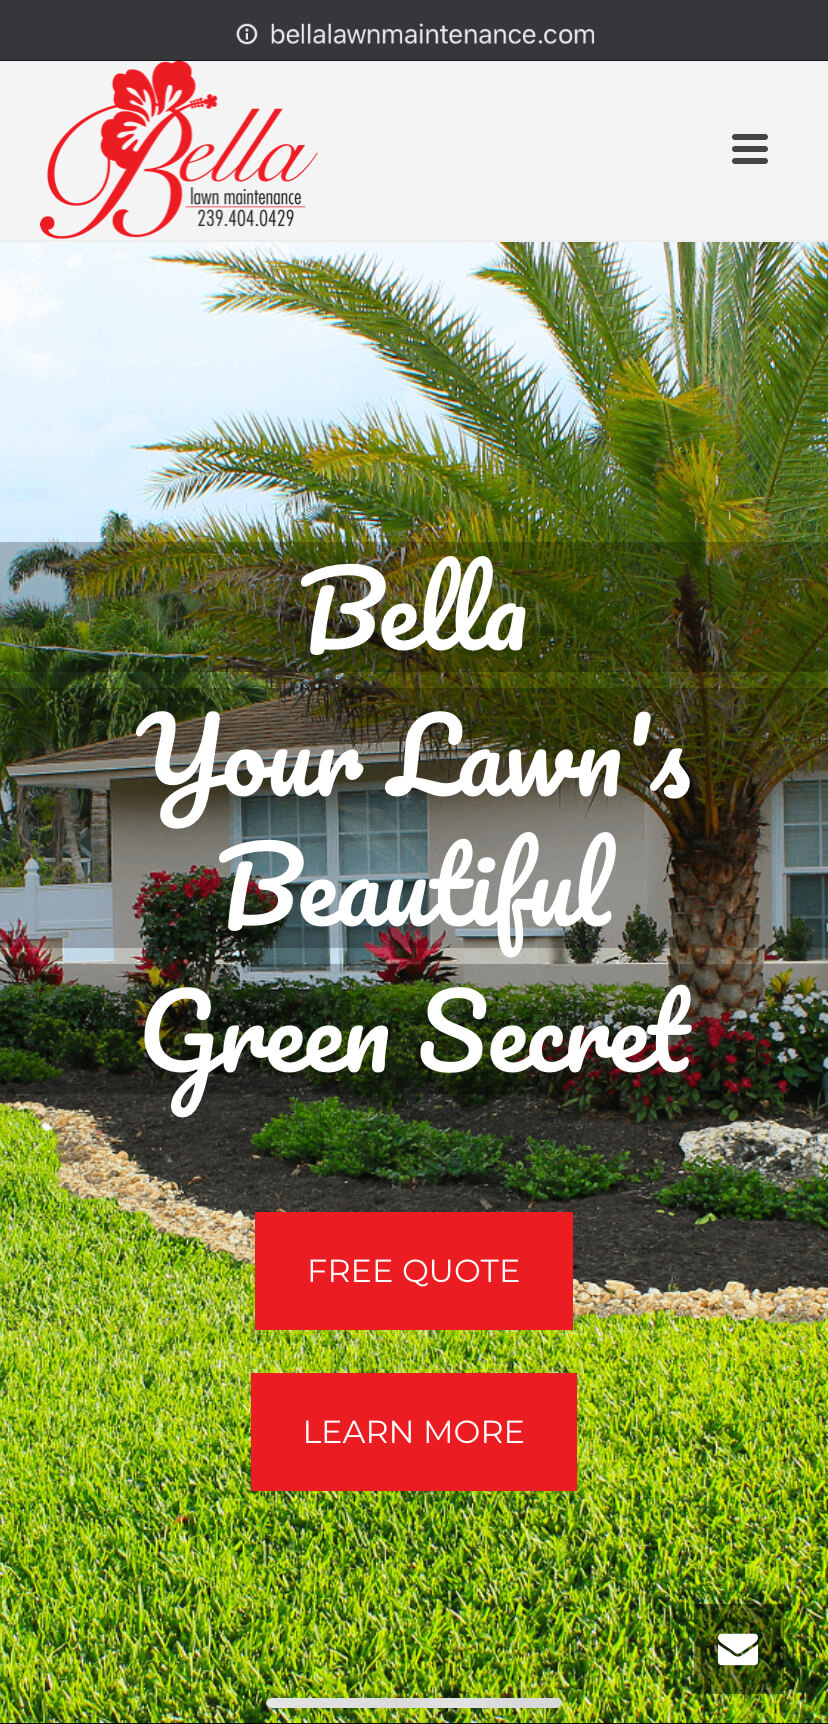 bella lawn mainetence splash page mobile